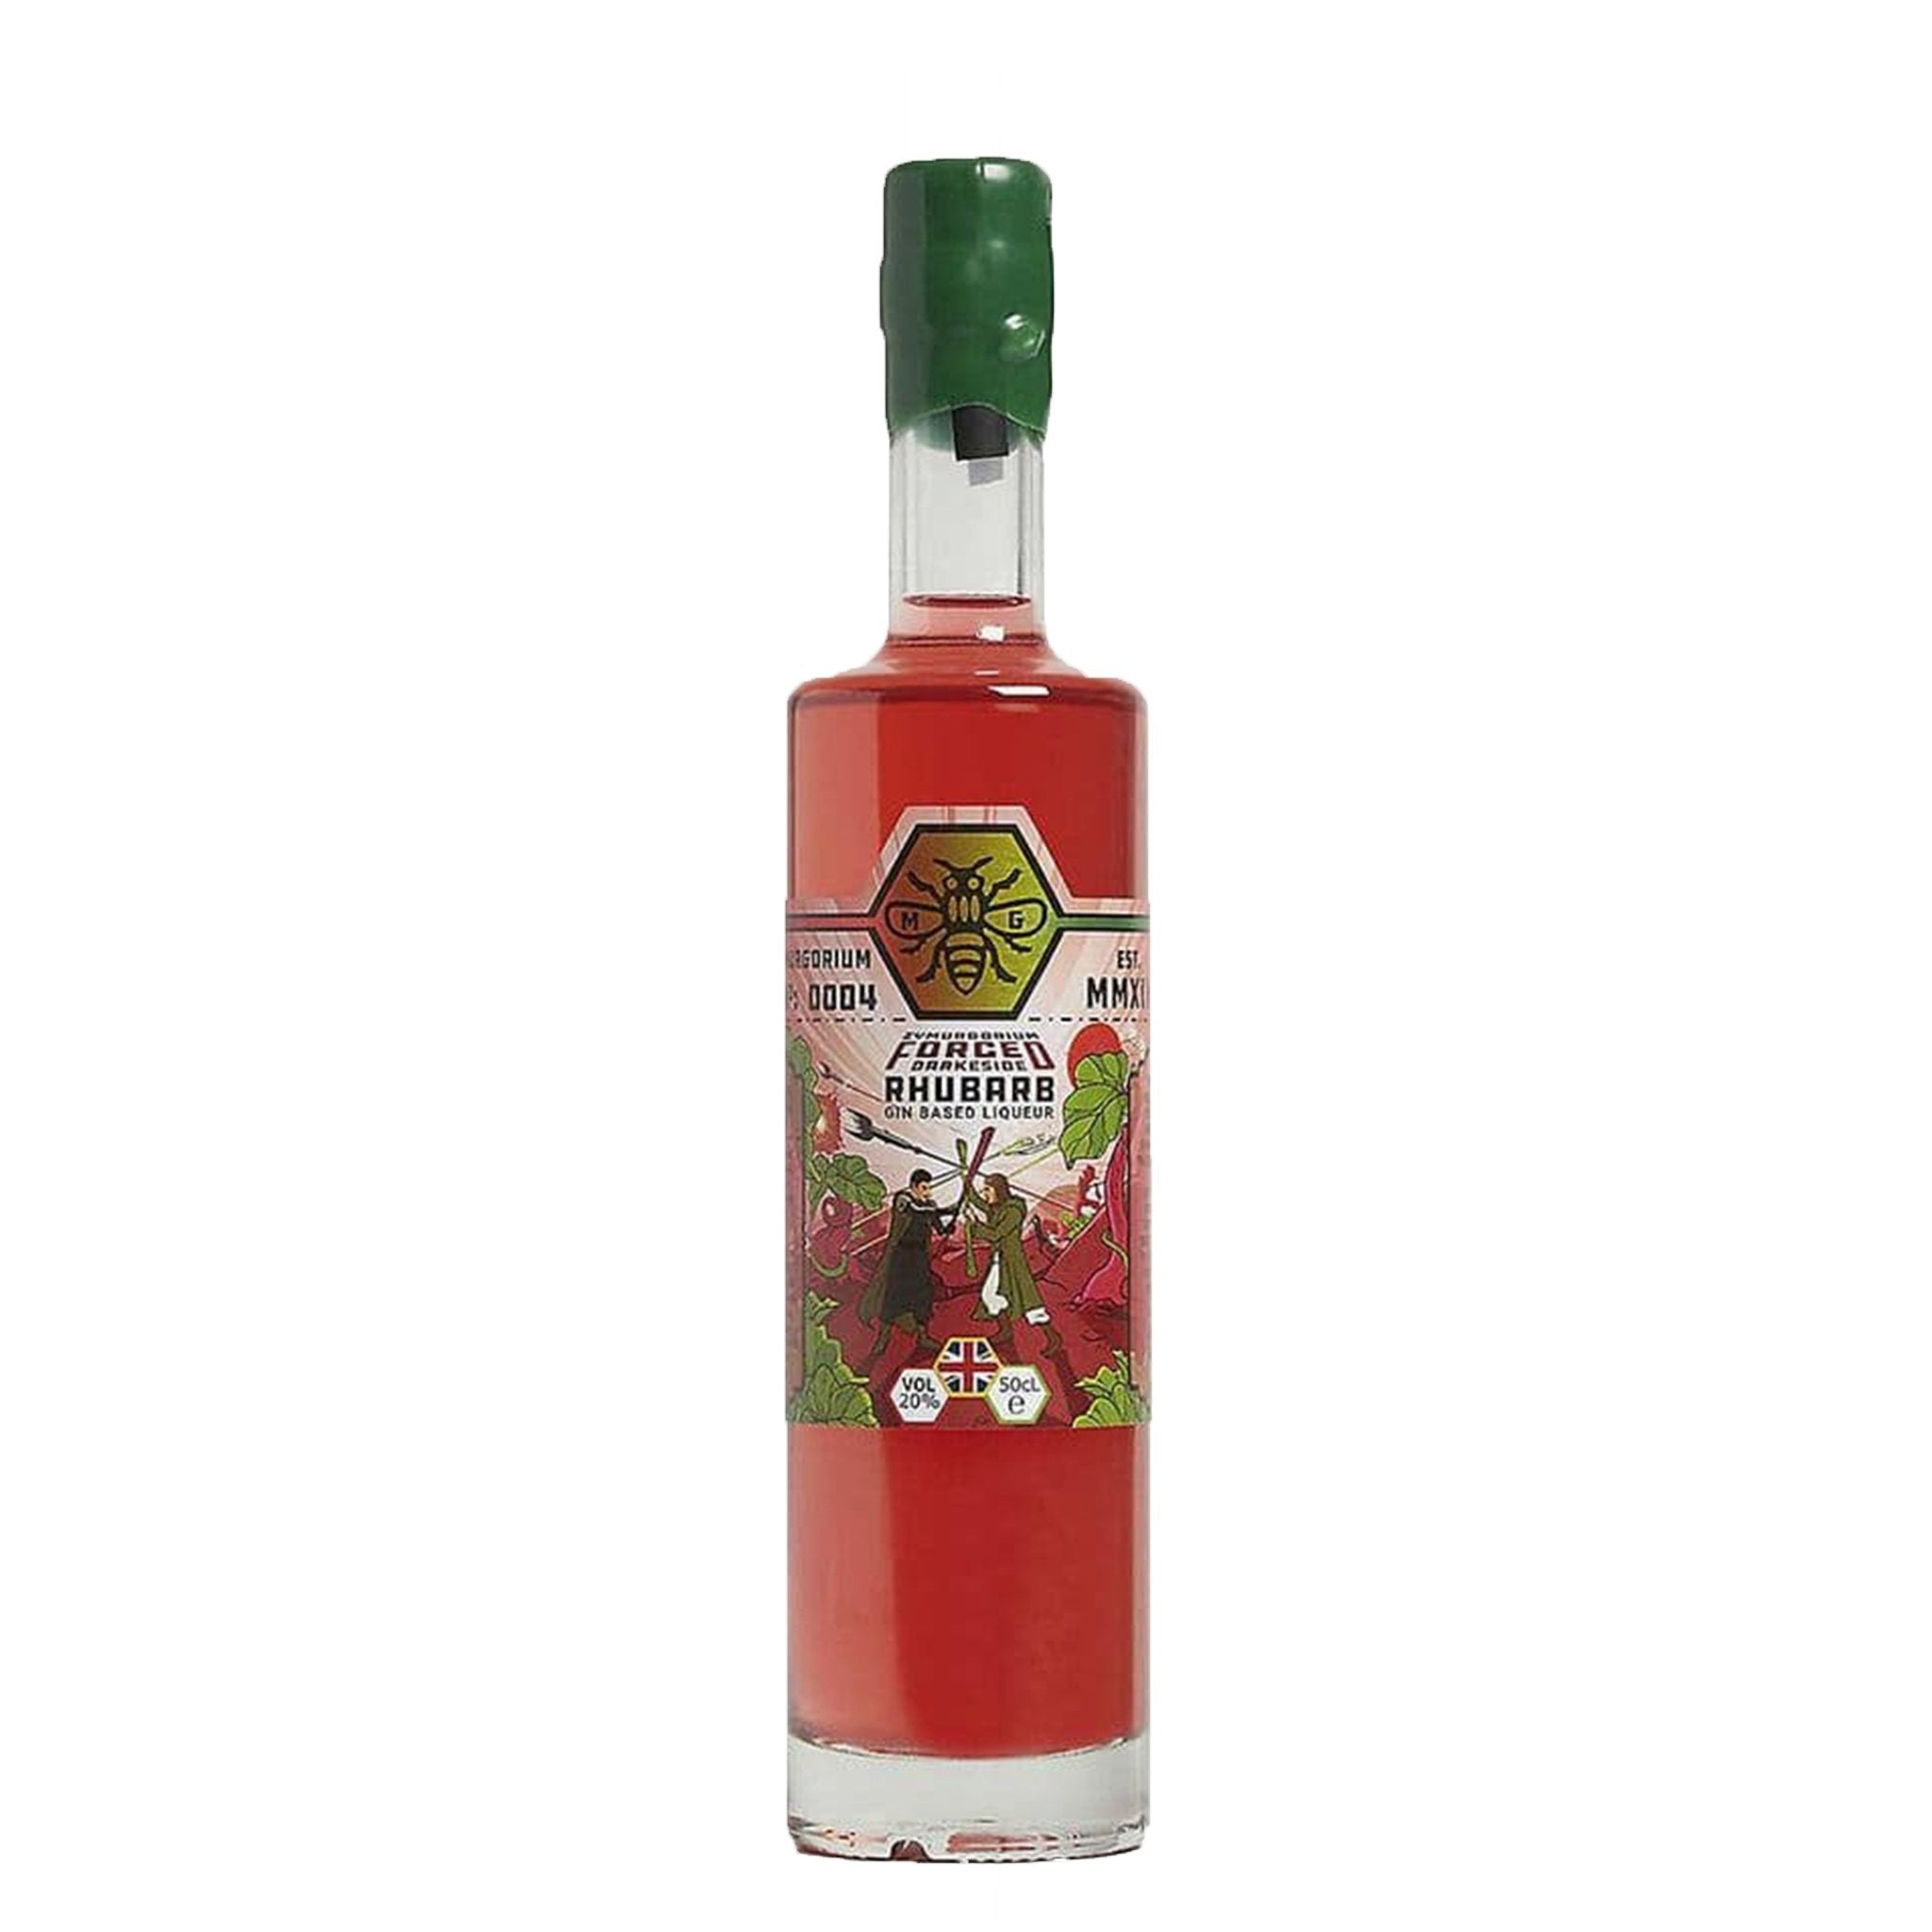 Zymurgorium Forced Darkside Rhubarb Gin Based Liqueur 50cl, Alcoholic Beverages by Drinks Shop